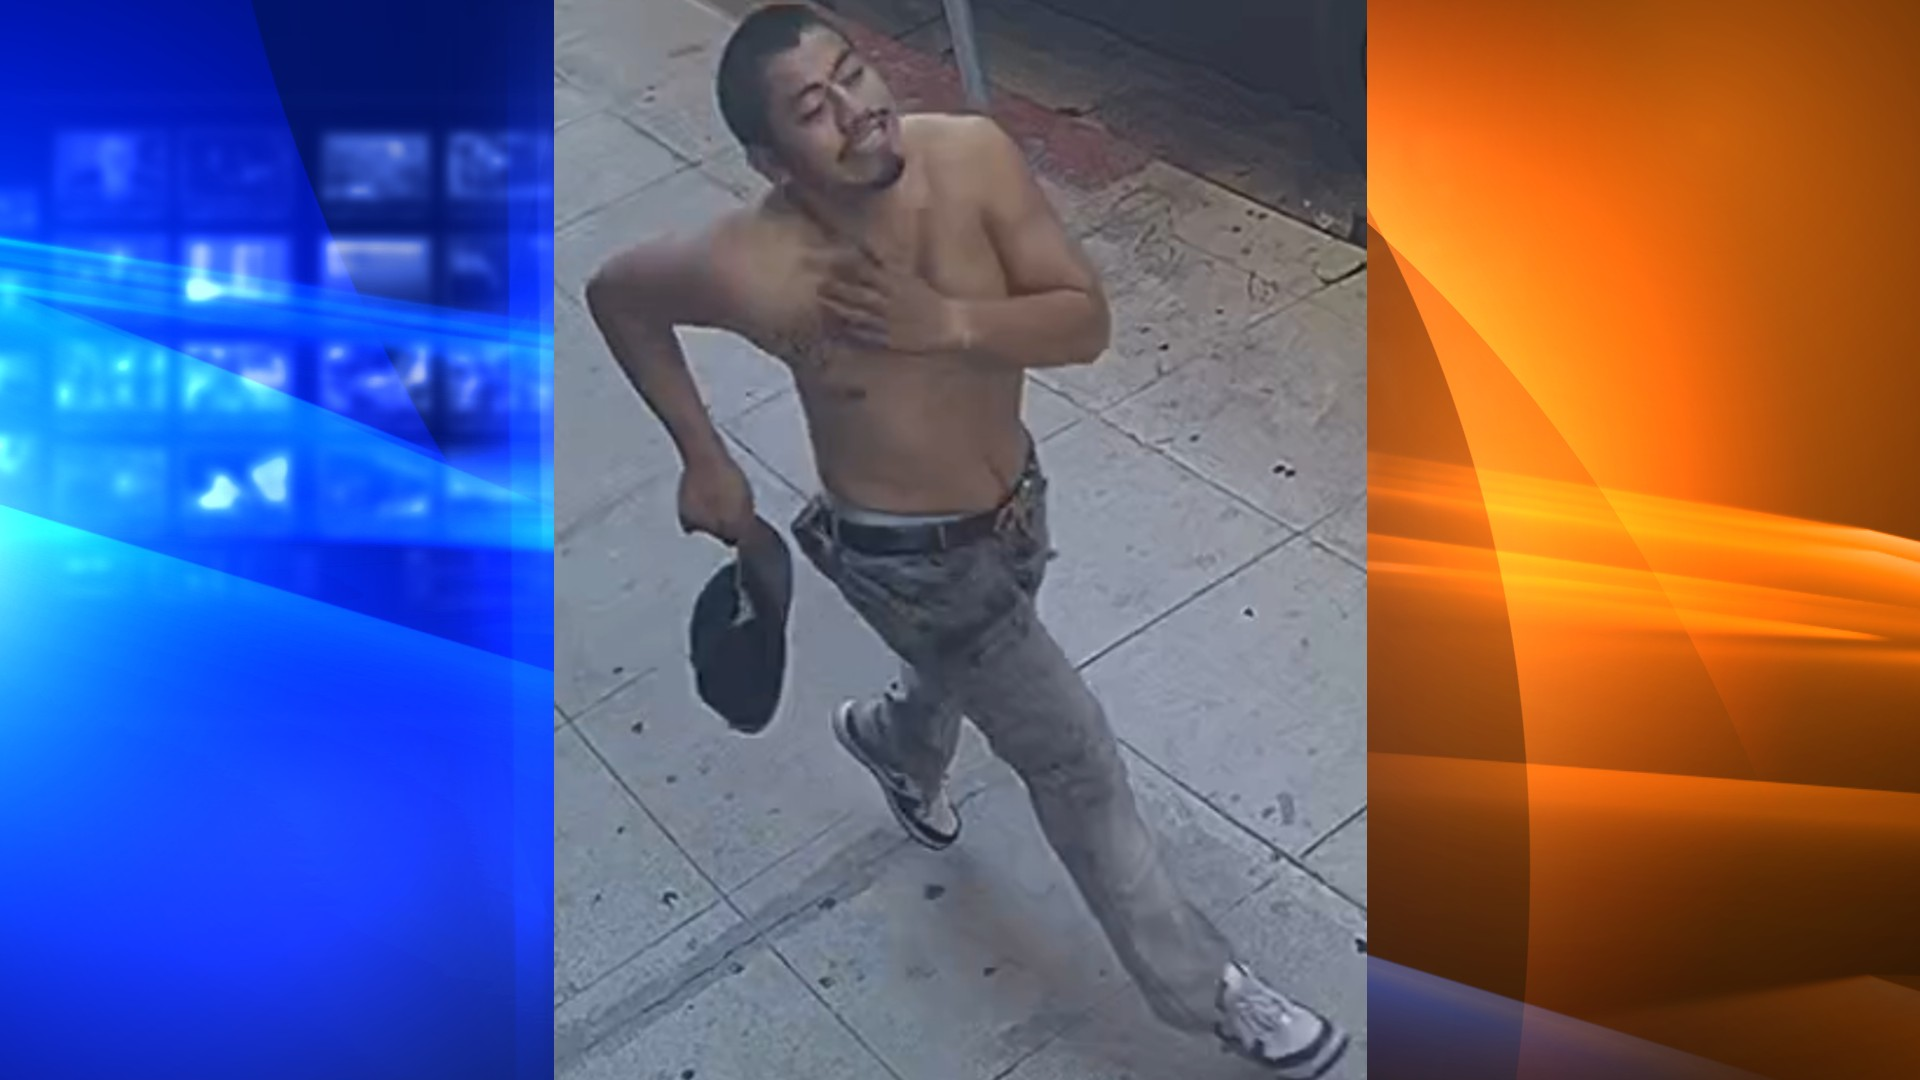 The LAPD is seeking a man believed to have struck a woman riding a rental electric scooter in downtown Los Angeles on Oct. 27, 2021. (LAPD)